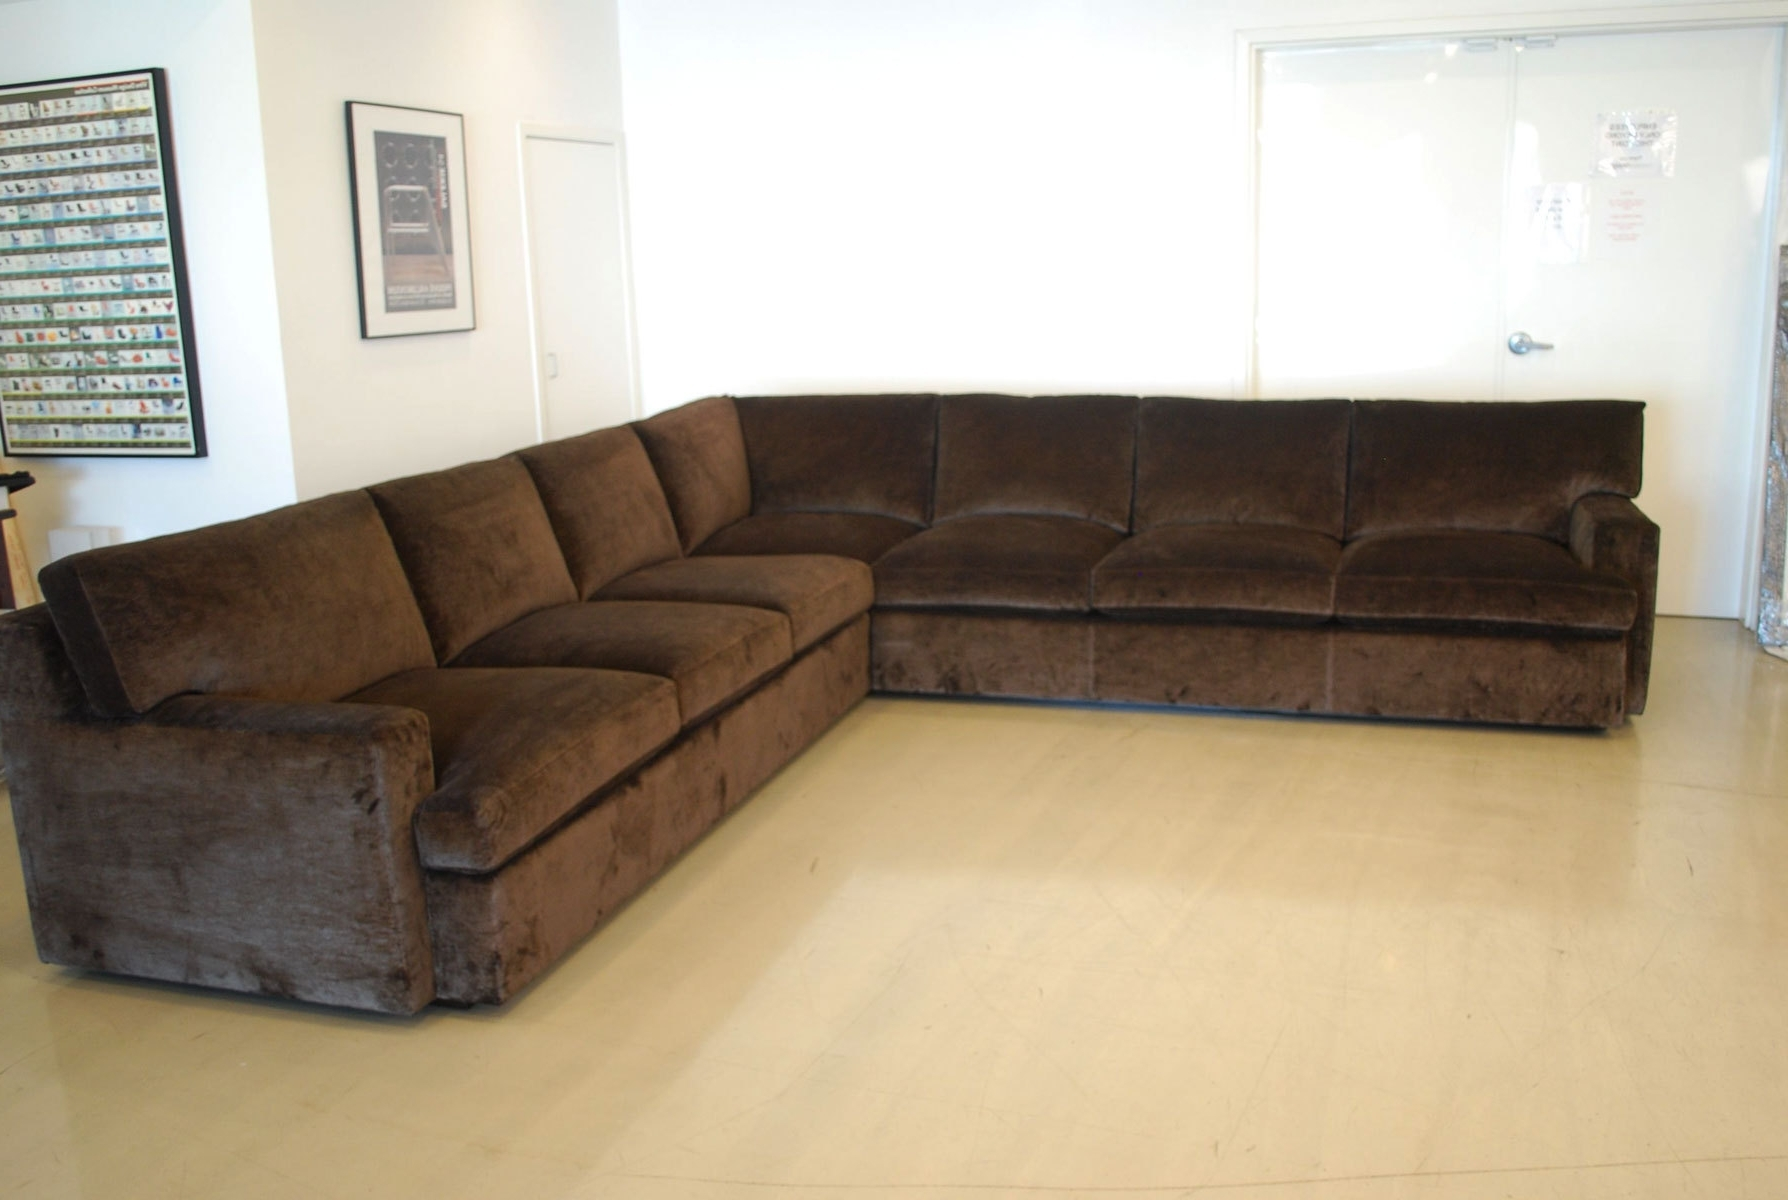 2018 Sectional Sofas At The Brick Within Amusing Large L Shaped Sectional Sofas 99 On The Brick Sofa Bed (View 1 of 20)